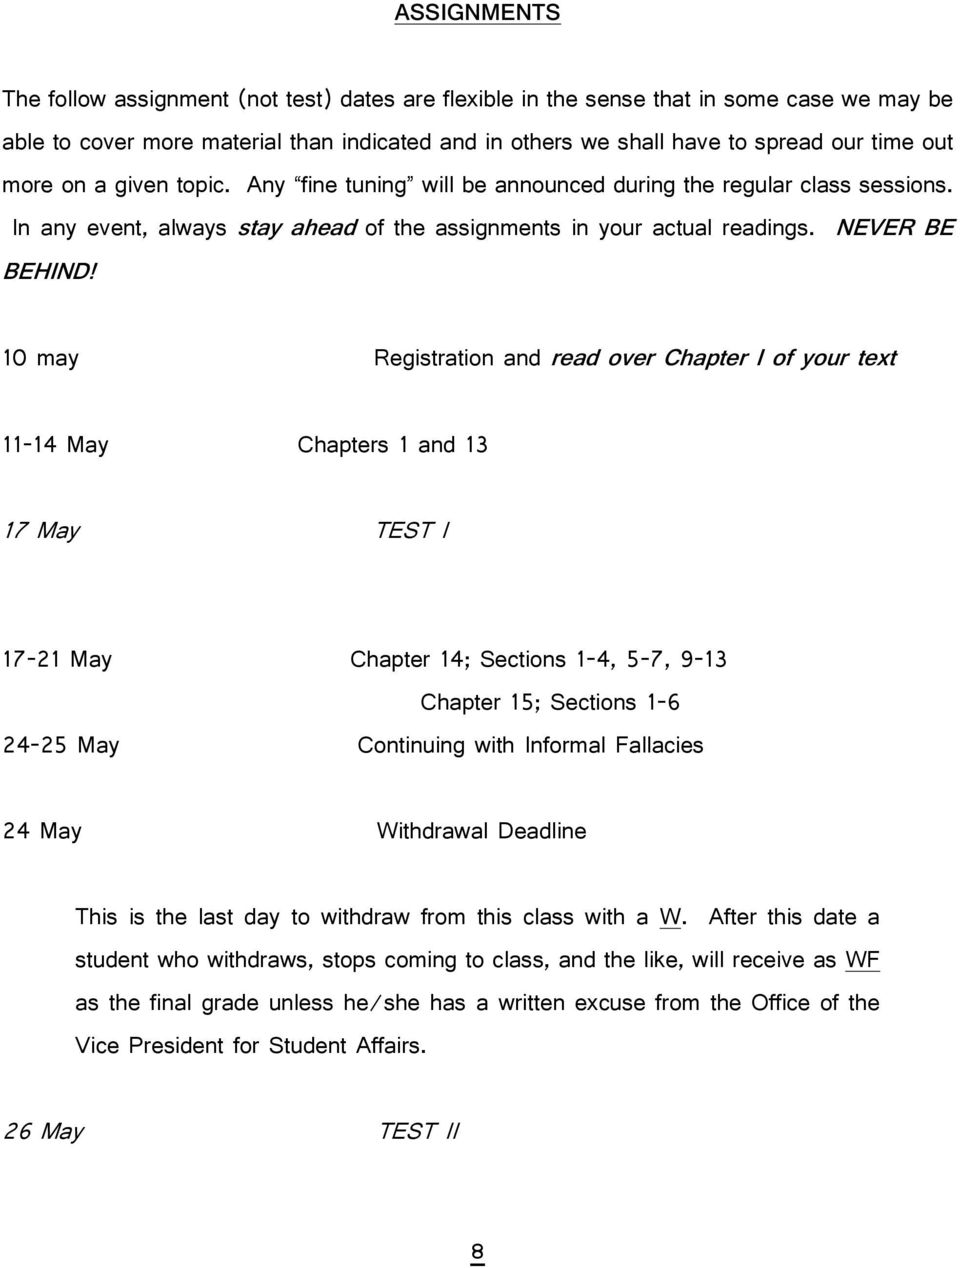 10 may Registration and read over Chapter I of your text 11-14 May Chapters 1 and 13 17 May TEST I 17-21 May Chapter 14; Sections 1-4, 5-7, 9-13 Chapter 15; Sections 1-6 24-25 May Continuing with